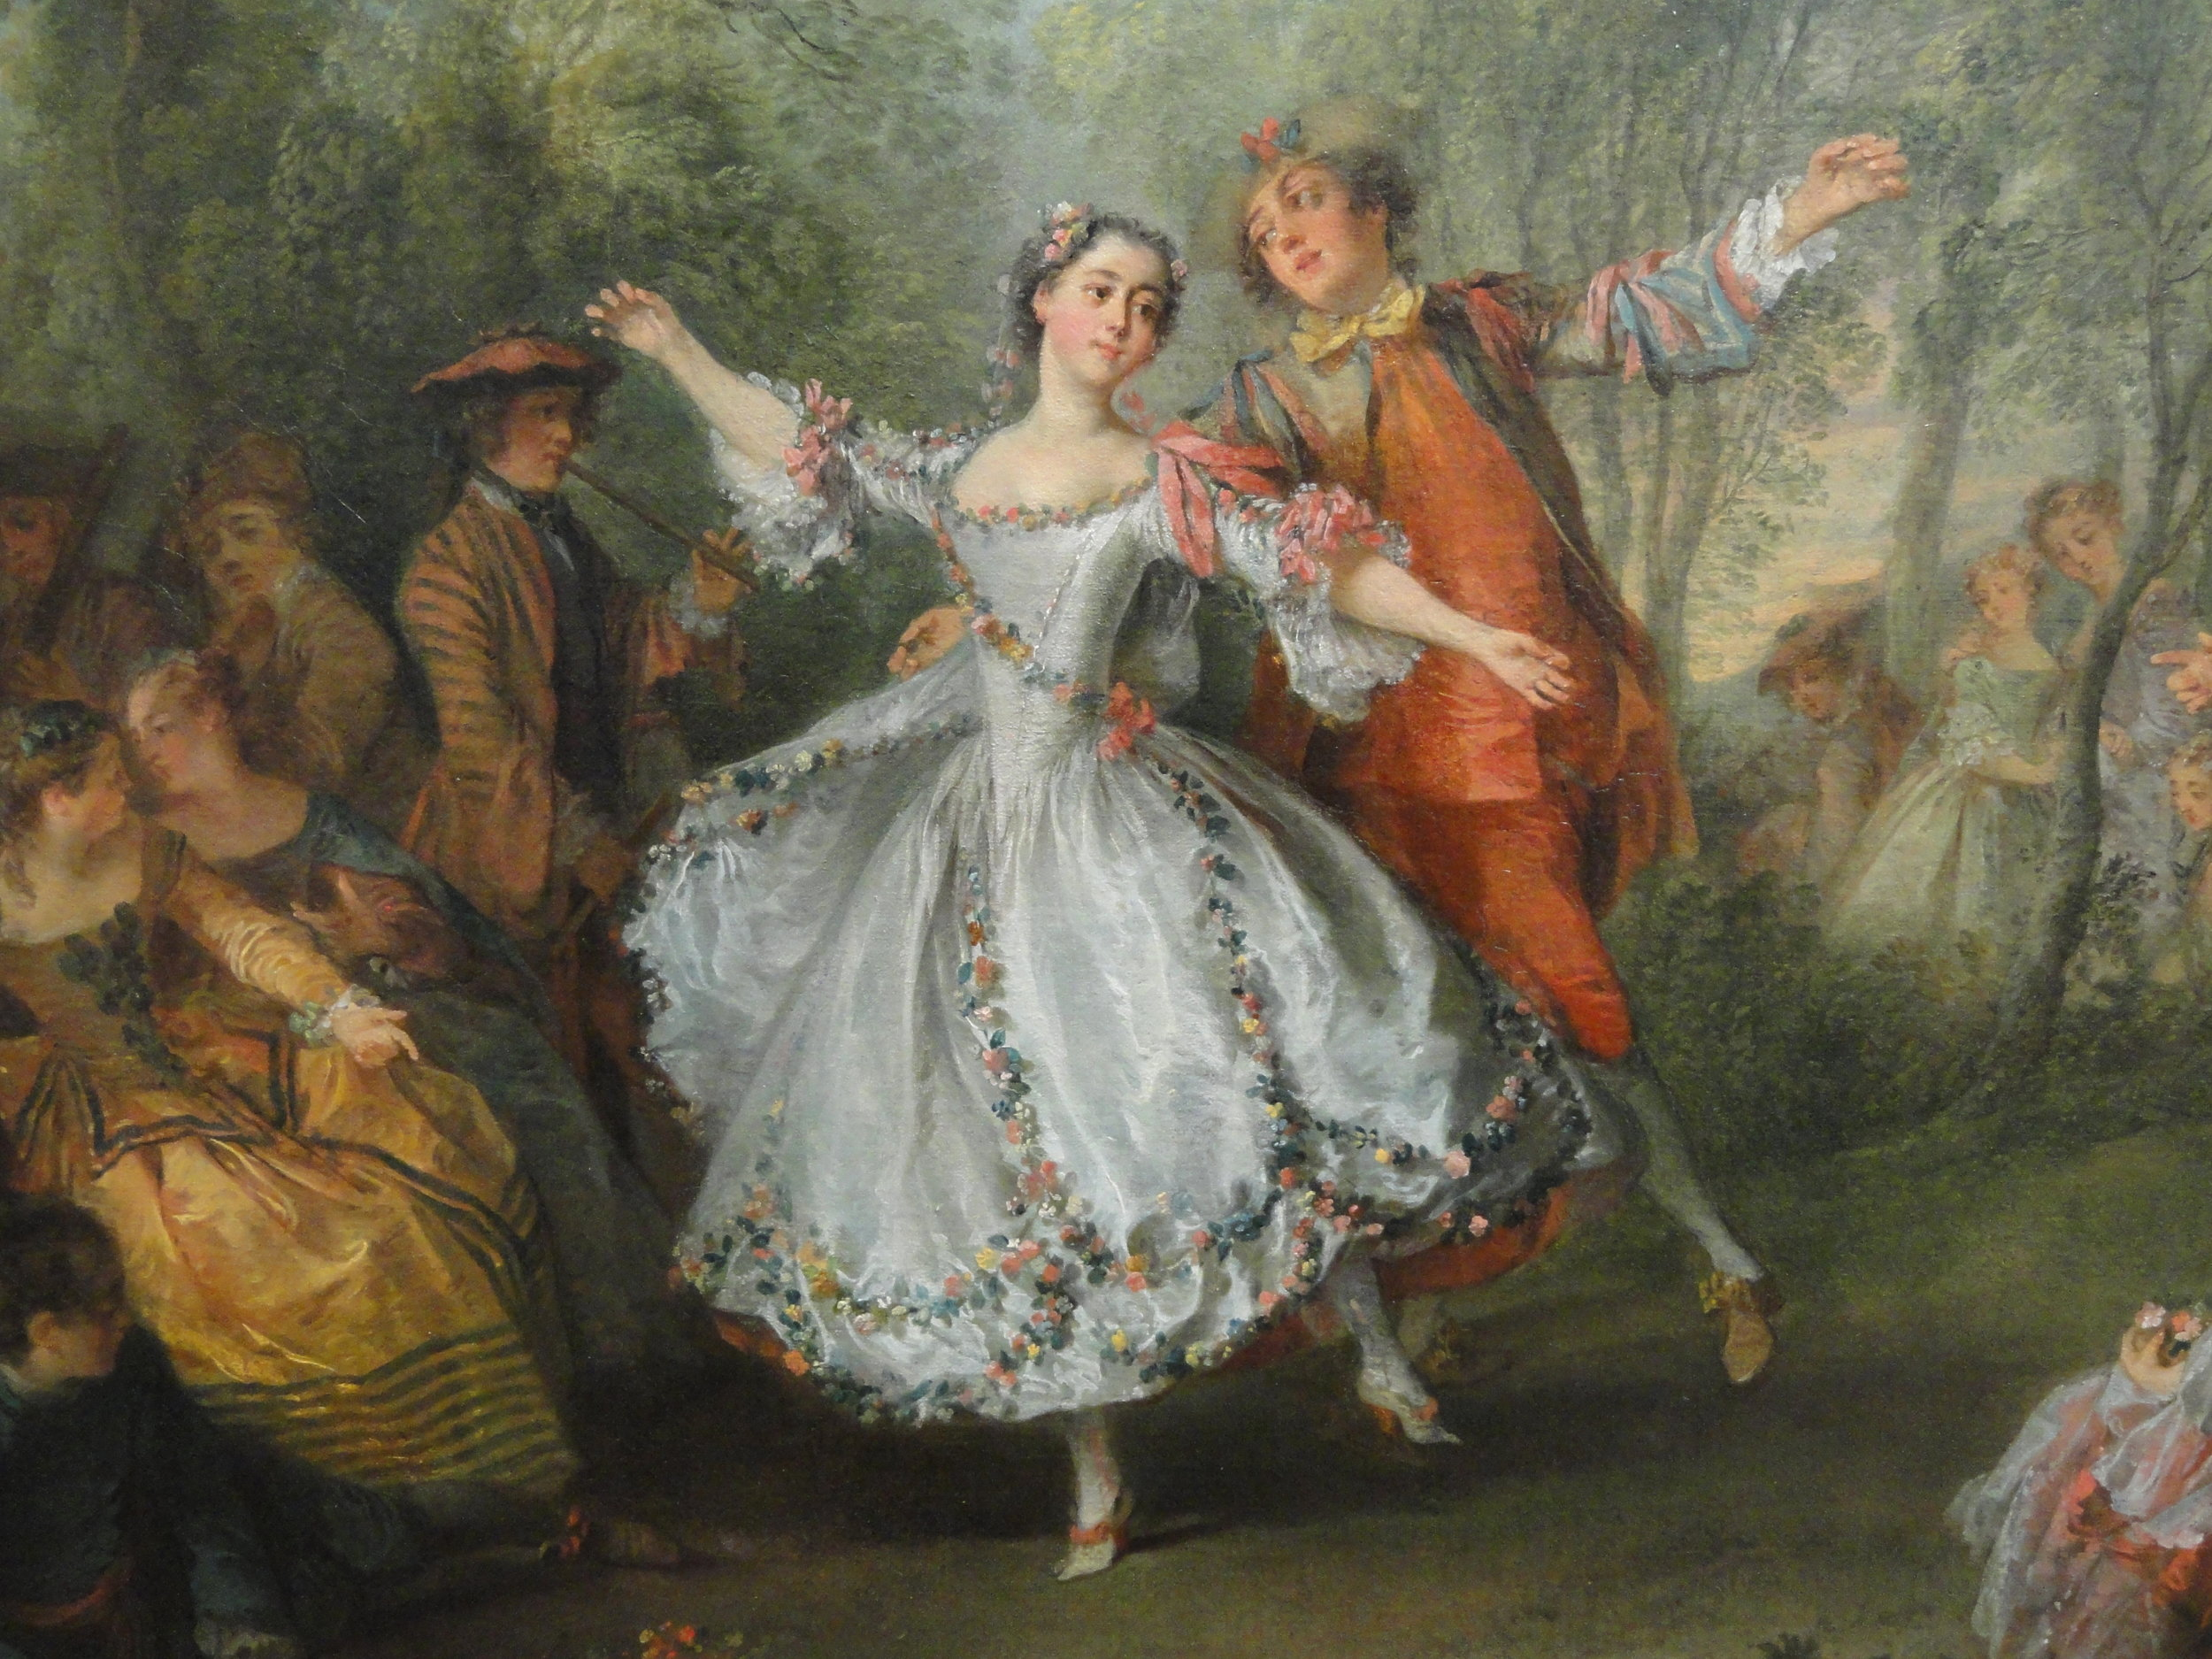 La_Camargo_Dancing_by_Nicolas_Lancret,_c._1730,_oil_on_canvas,_view_2_-_National_Gallery_of_Art,_Washington_-_DSC09962.jpg